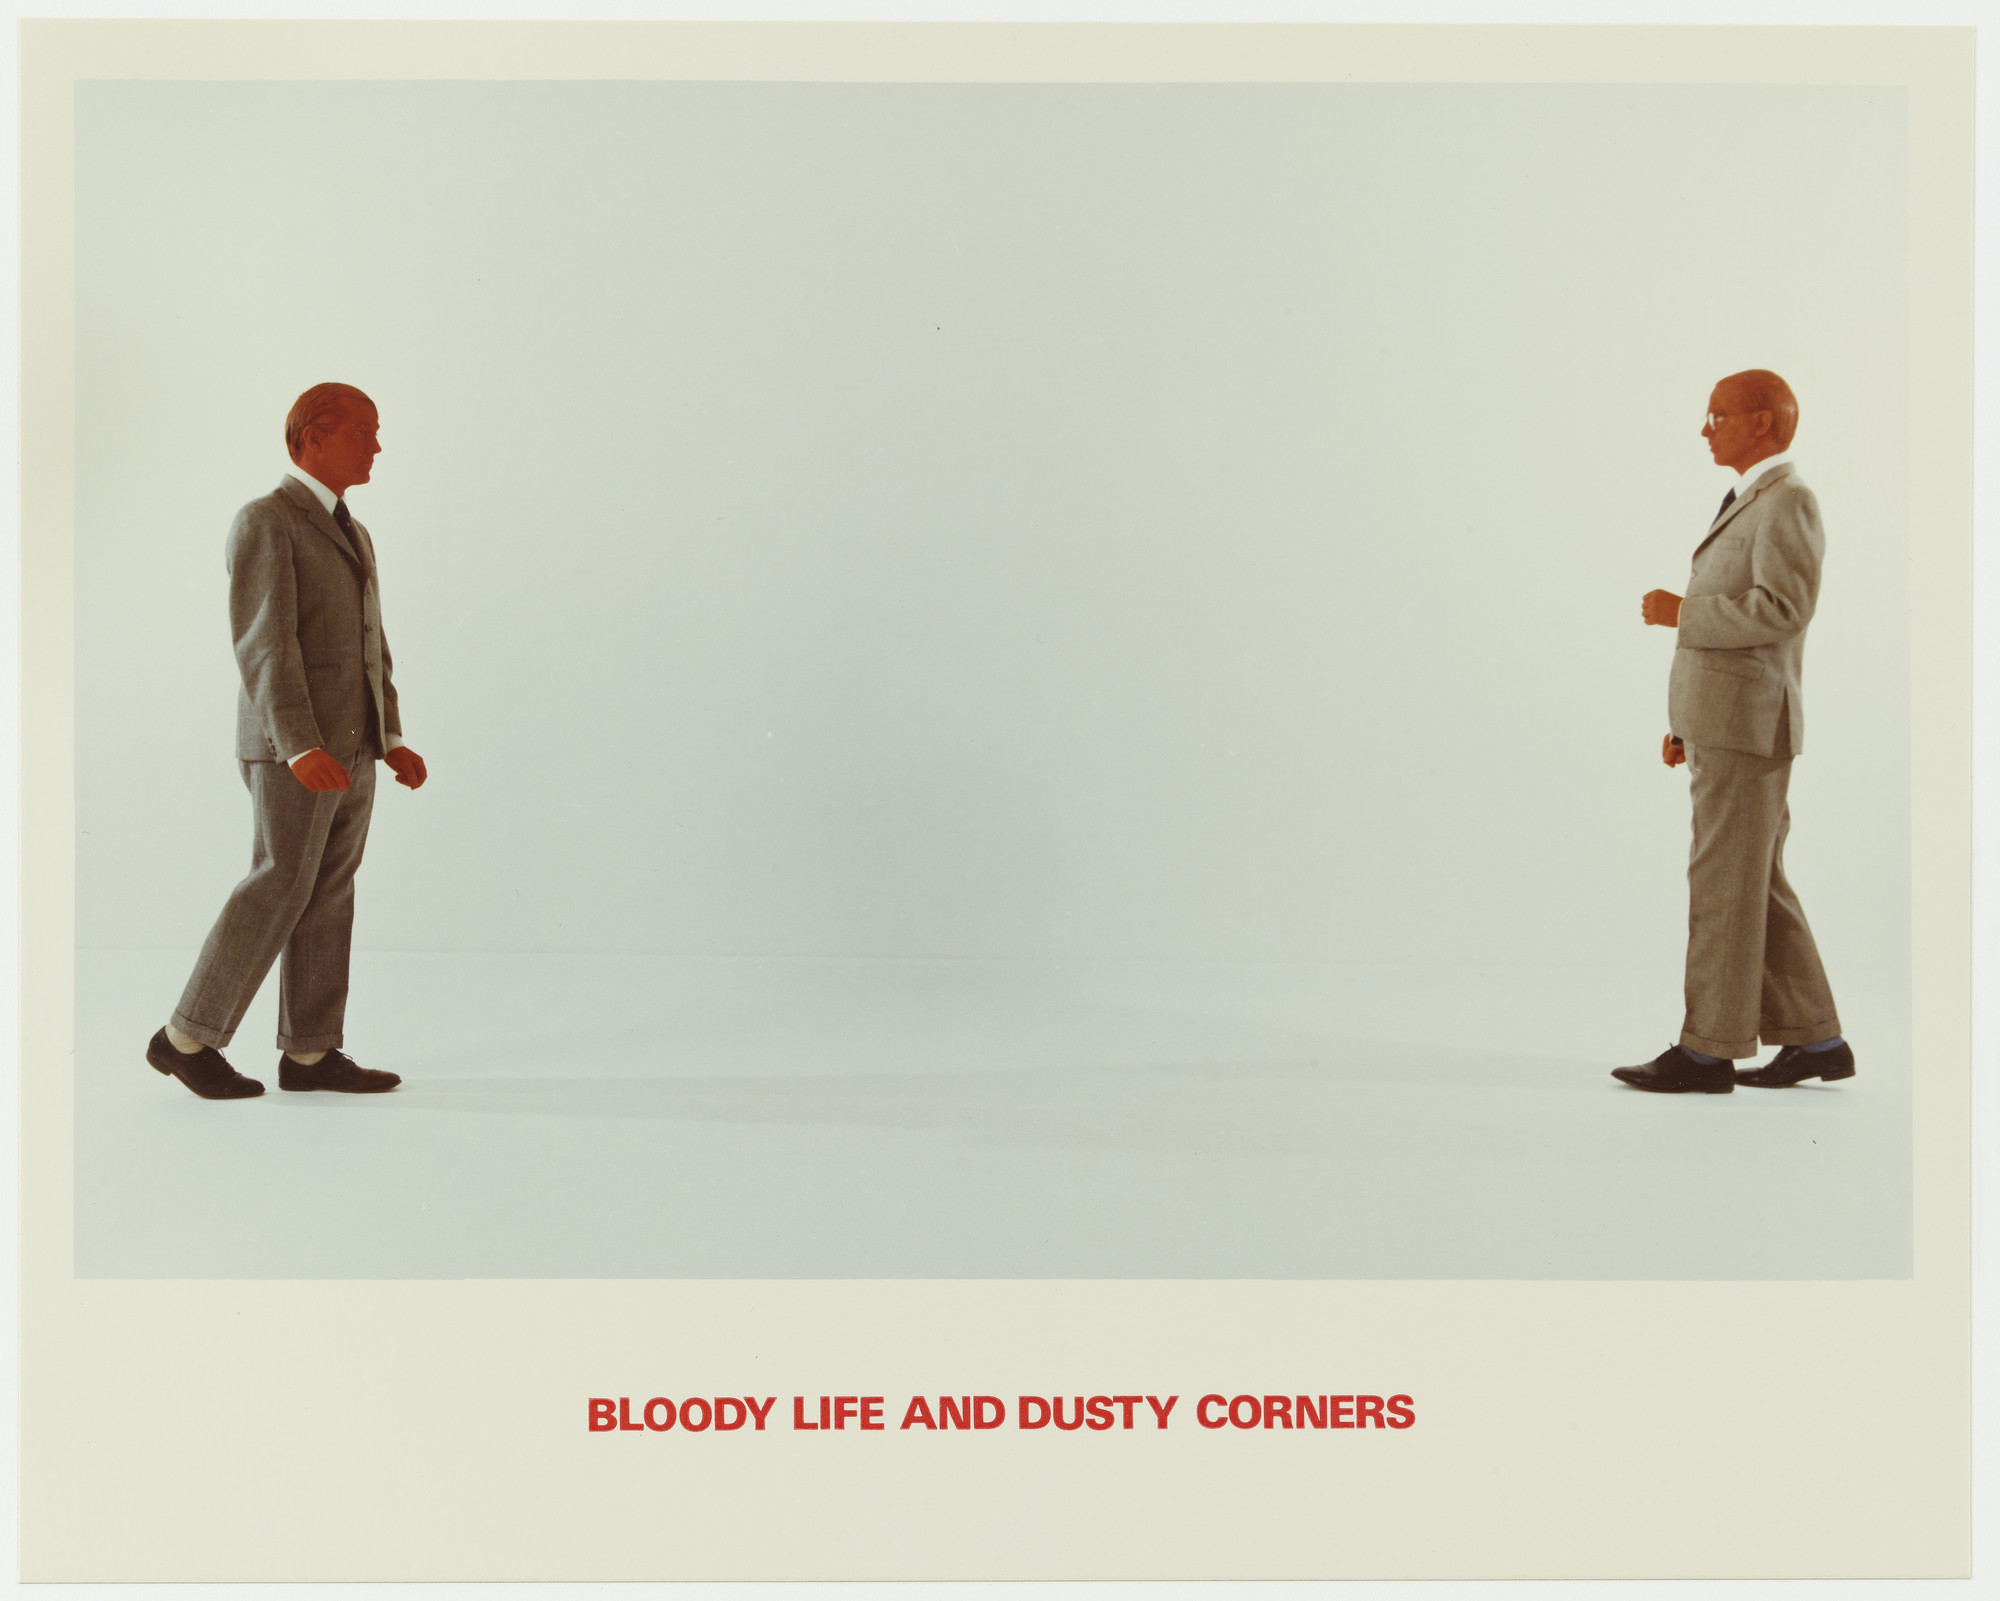 Gilbert & George. Bloody Life and Dusty Corners. 1975